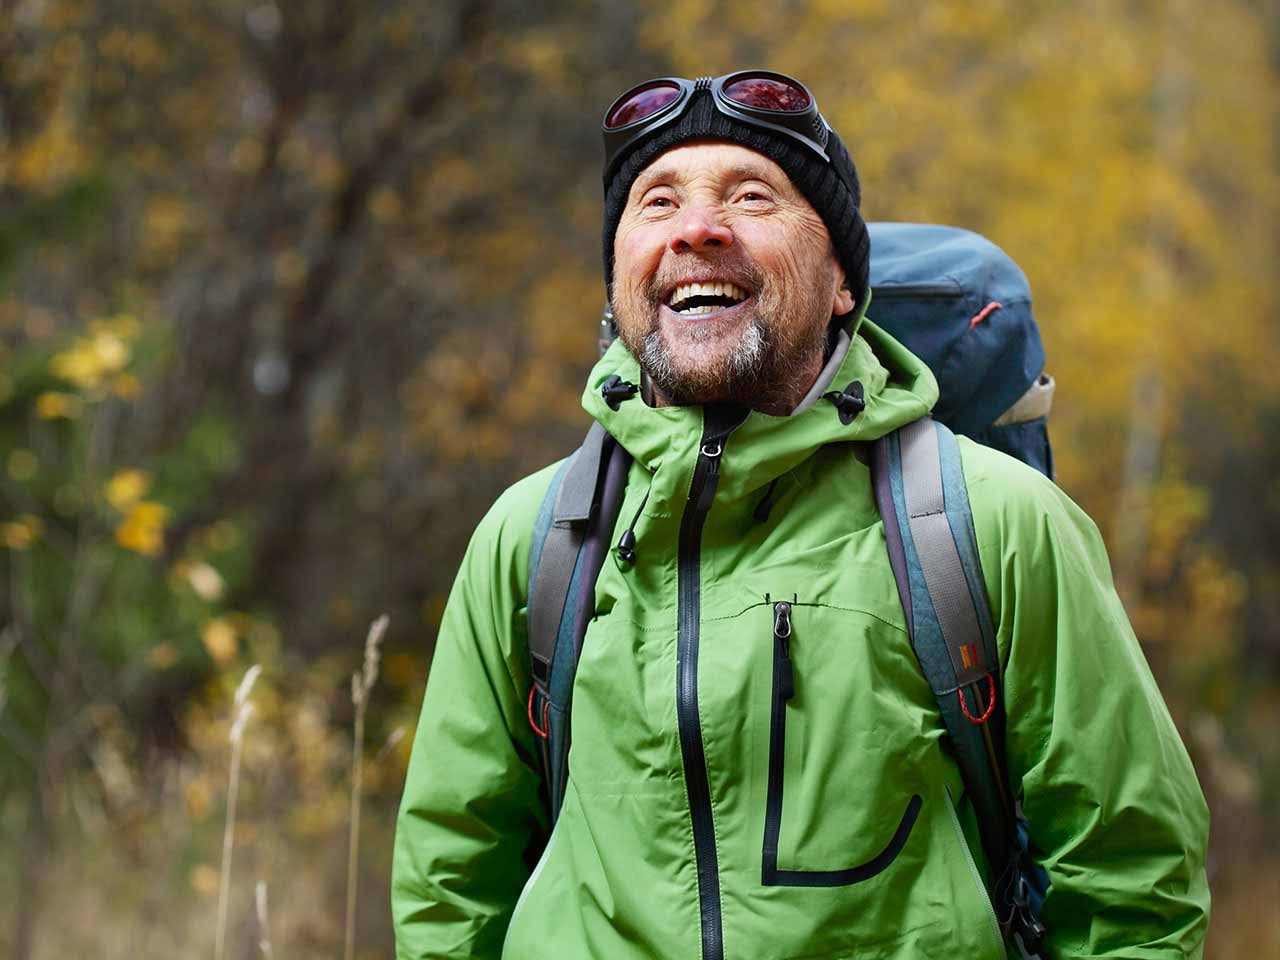 Mature man hiking with backpack and laughing